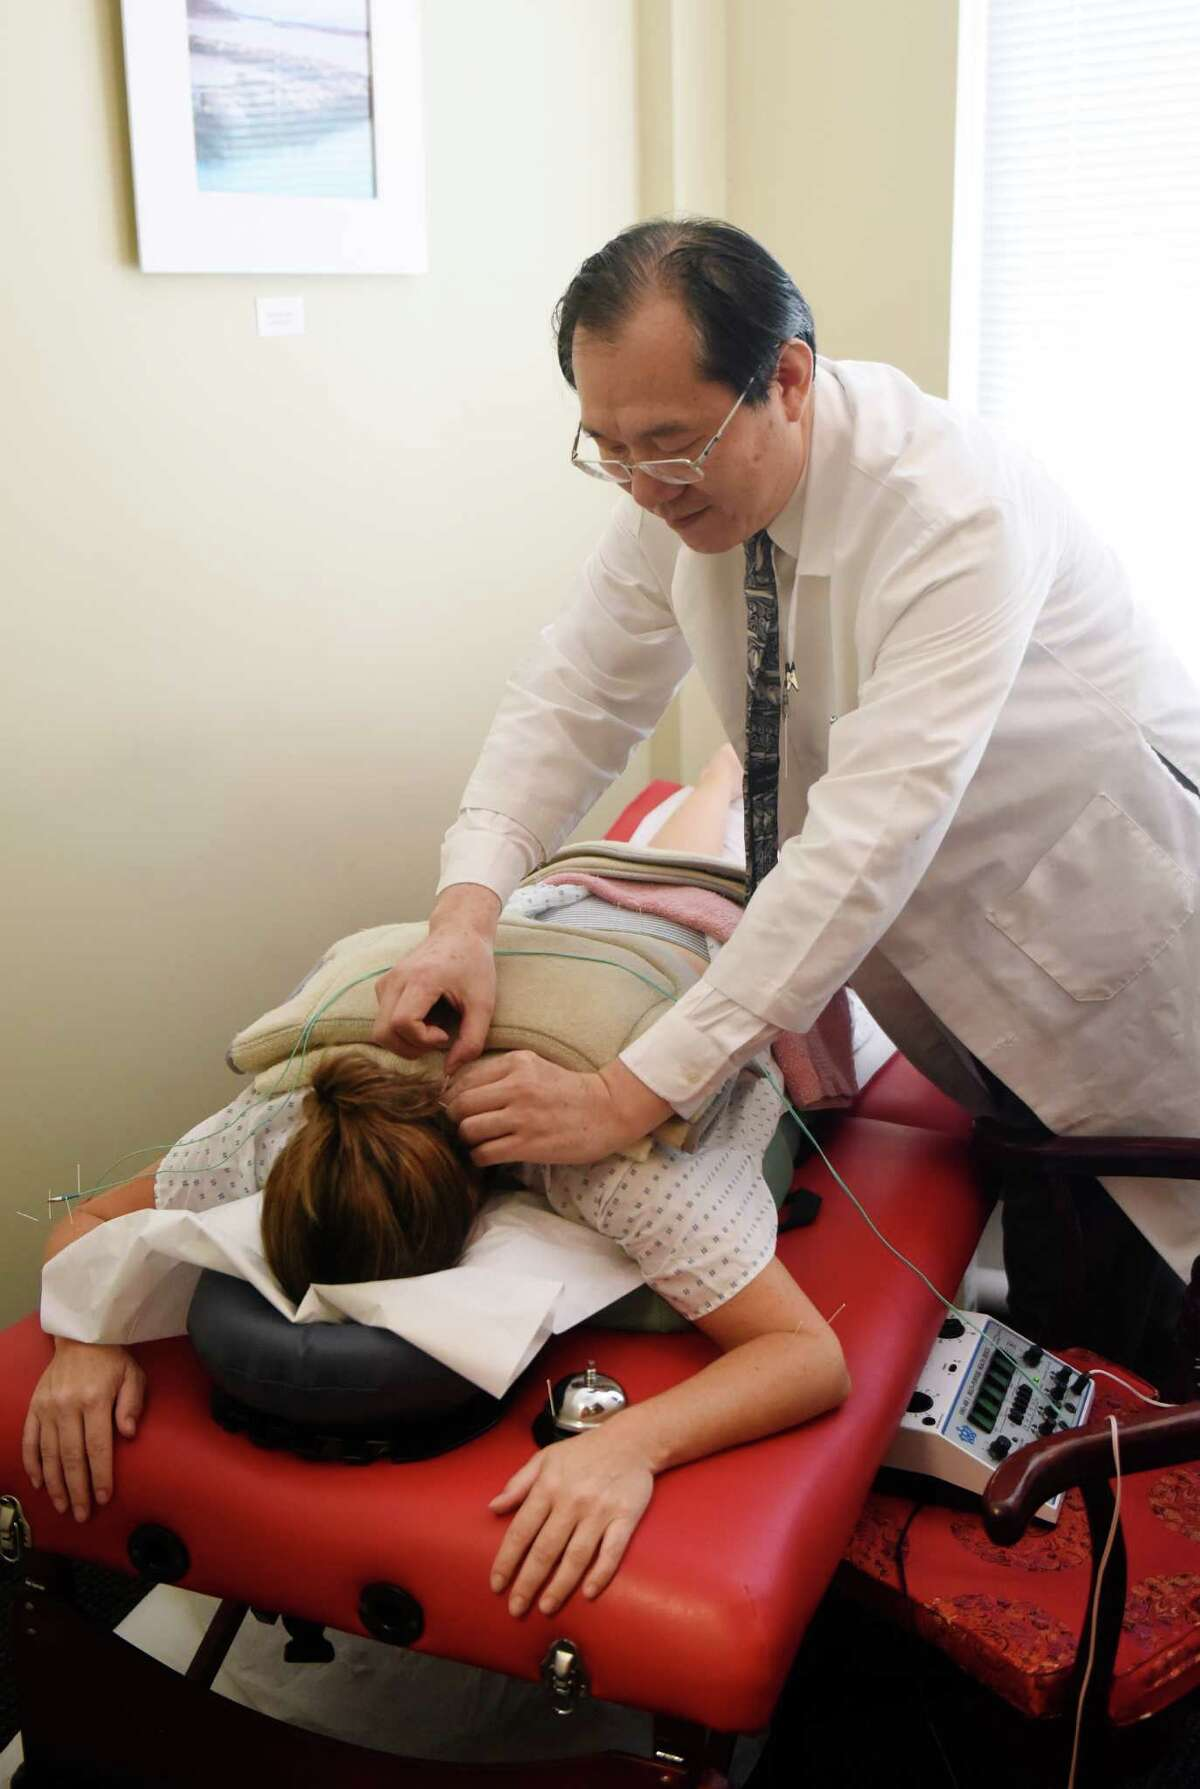 Dr. Jun Xu performs an acupuncture procedure on a patient at Rehabilitation Medicine & Acupuncture Center in the Riverside section of Greenwich on Tuesday. Xu offers acupuncture treatment for infertility, claiming that many patients have been successfully treated.